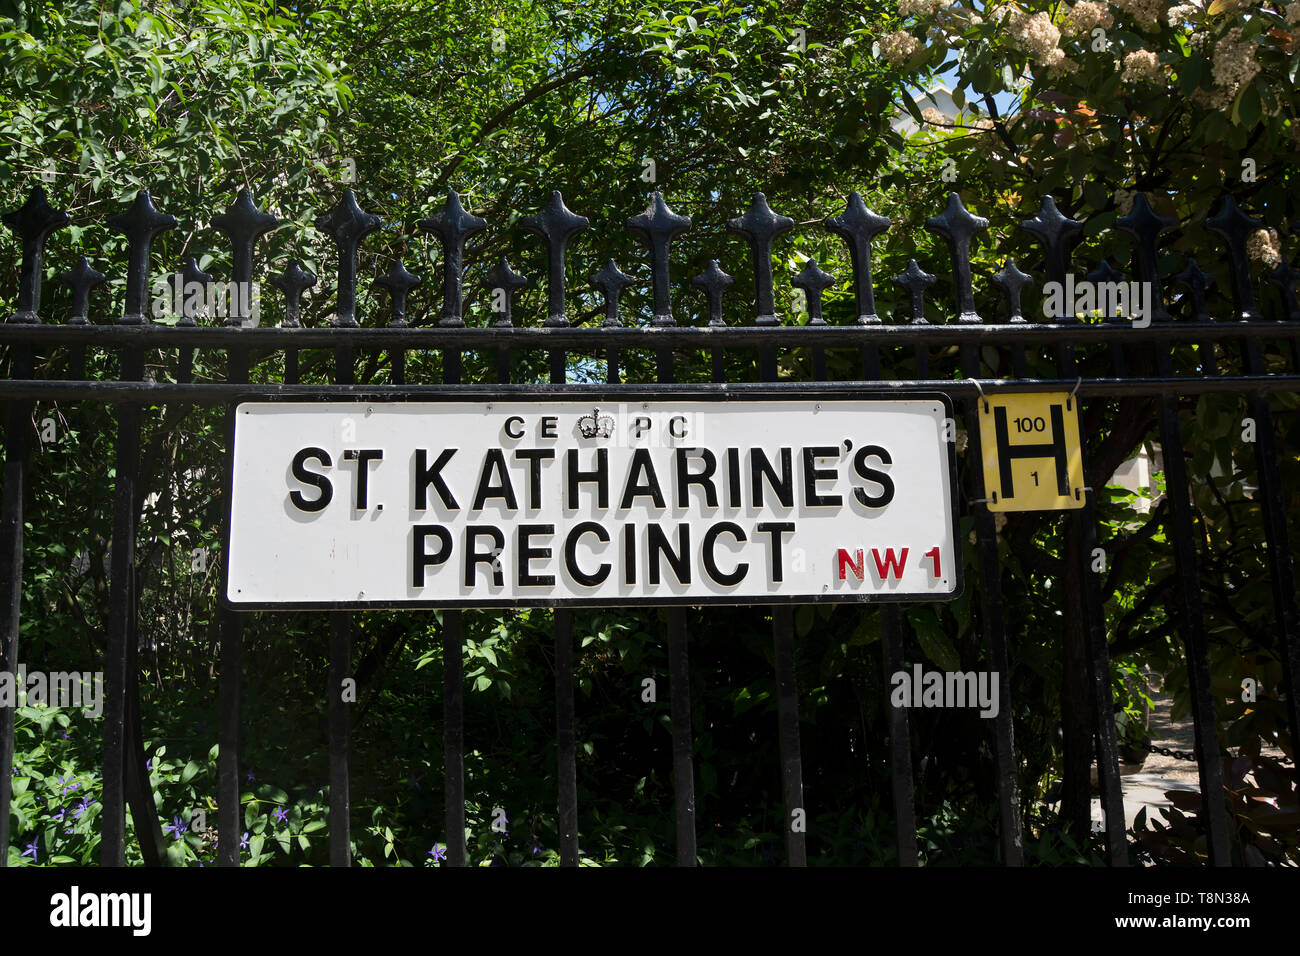 with a crown estates pavements commission logo, street name sign for st katharine's precinct , site of the danish lutheran church in  london, england - Stock Image